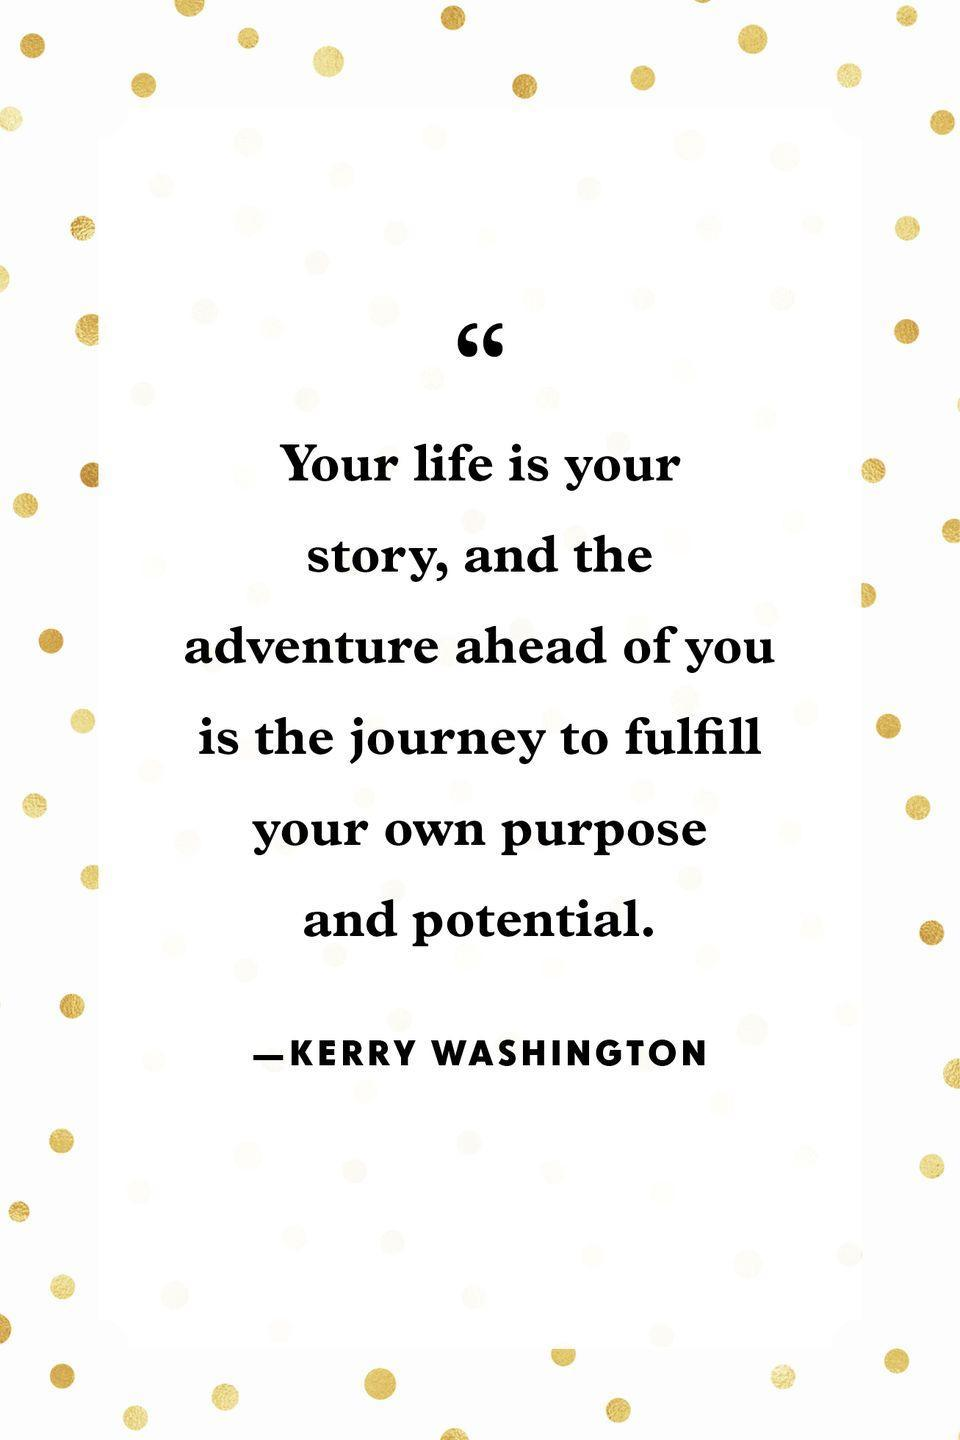 """<p>""""Your life is your story, and the adventure ahead of you is the journey to fulfill your own purpose and potential.""""</p>"""